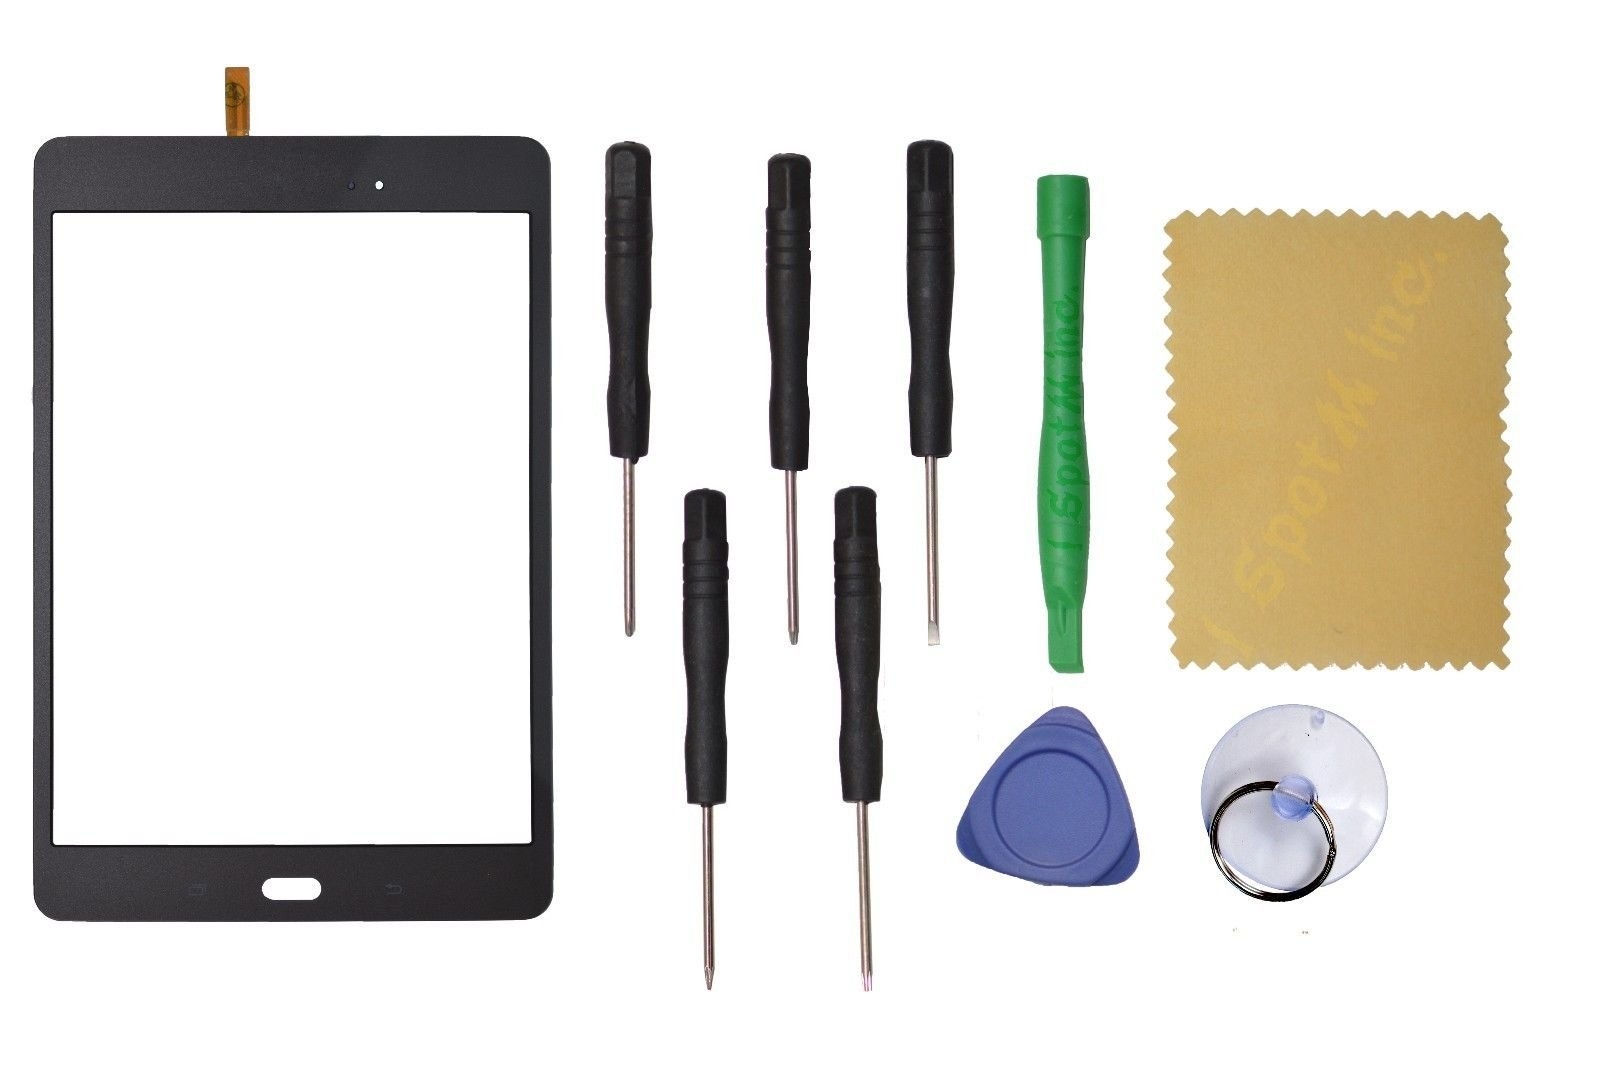 Gray Touch Screen Digitizer Replacement for Samsung Galaxy Tab A 8.0 SM-T350